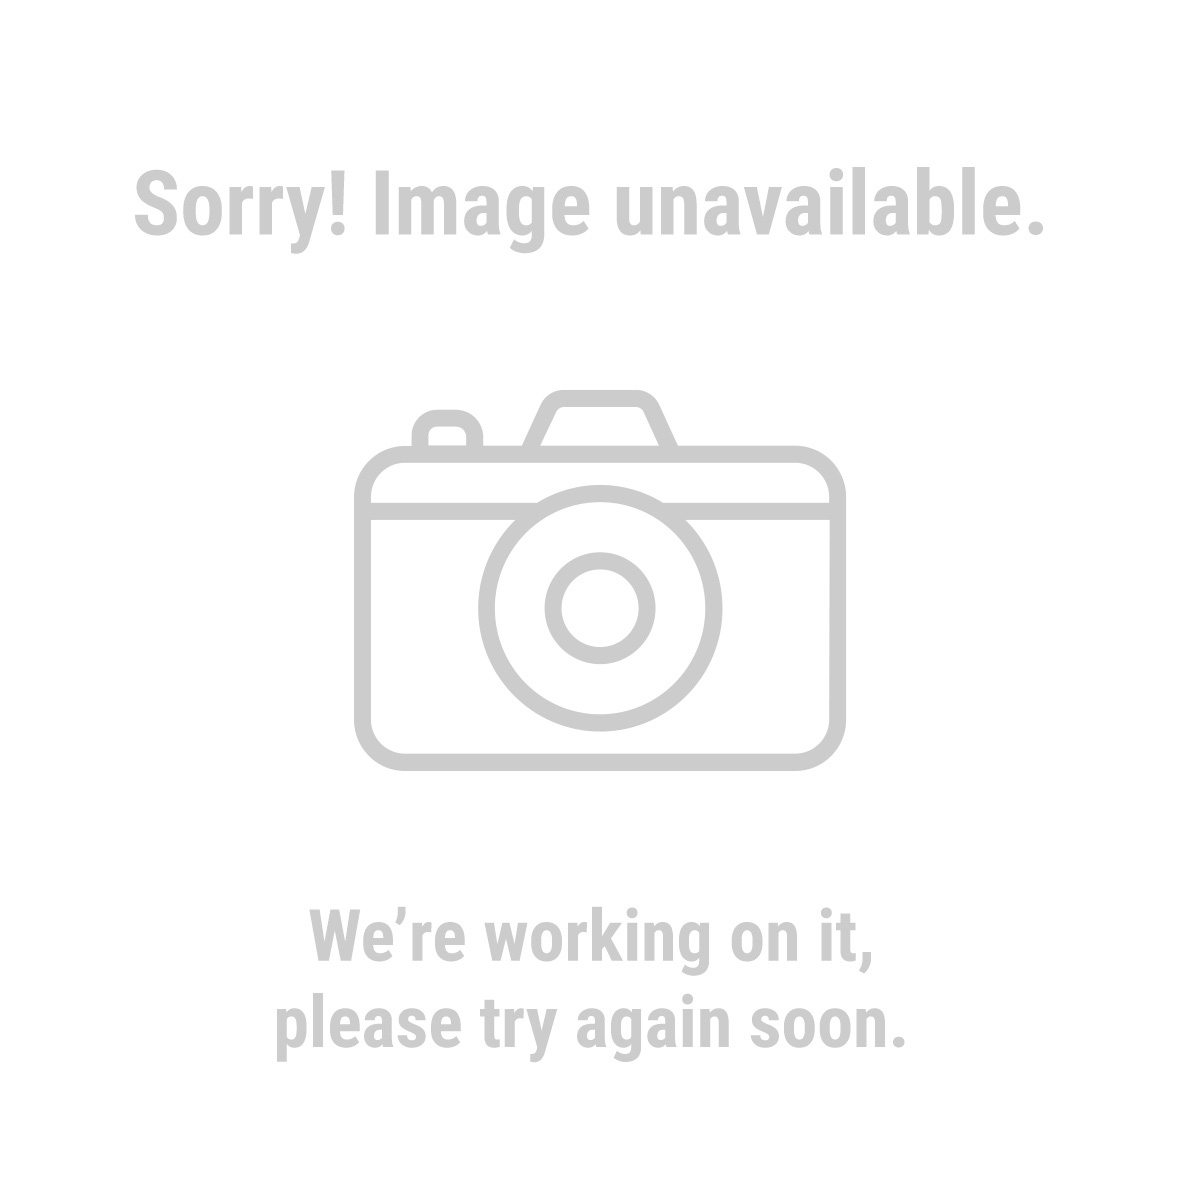 Greenworks 80v Pro Brushless Backpack Blower Puts 580 Cfm 145 Mph as well Dewalt Dcd795 Dcd790 Brushless Li Ion Drills Toolstop Review A1325 moreover Energy Efficient Motor Operation Costs also Panasonic Launch Their New Brushless Motor Power Tools further Makita Dhr171z 18v Lxt Brushless Sds Rotary Hammer 17mm Body Only P79365. on brushless motor power tool